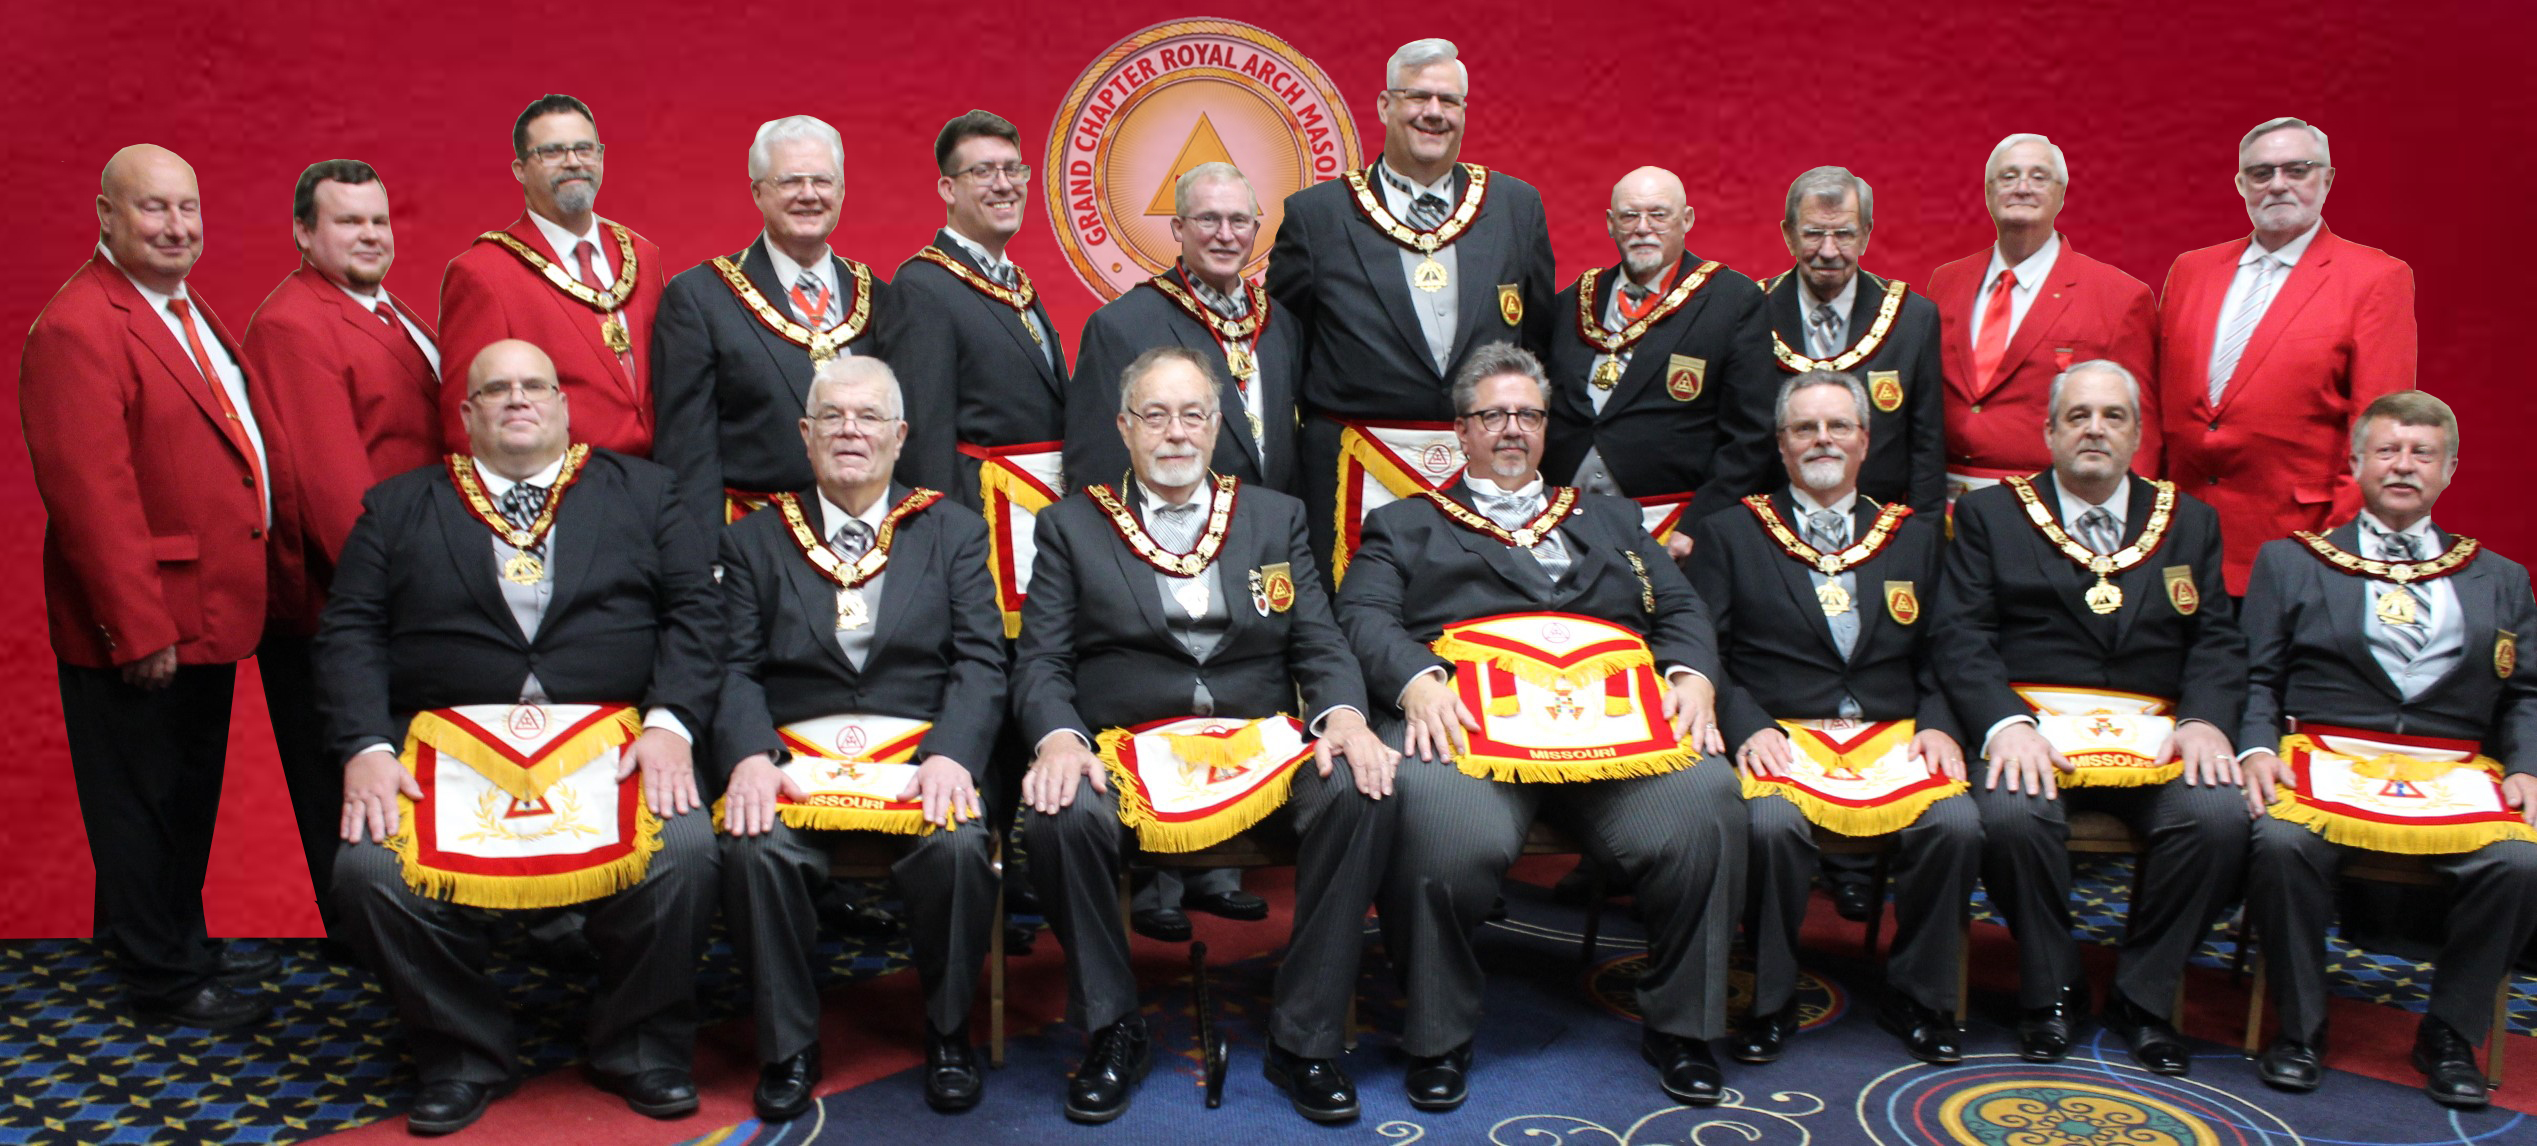 2021 Grand Chapter Officers